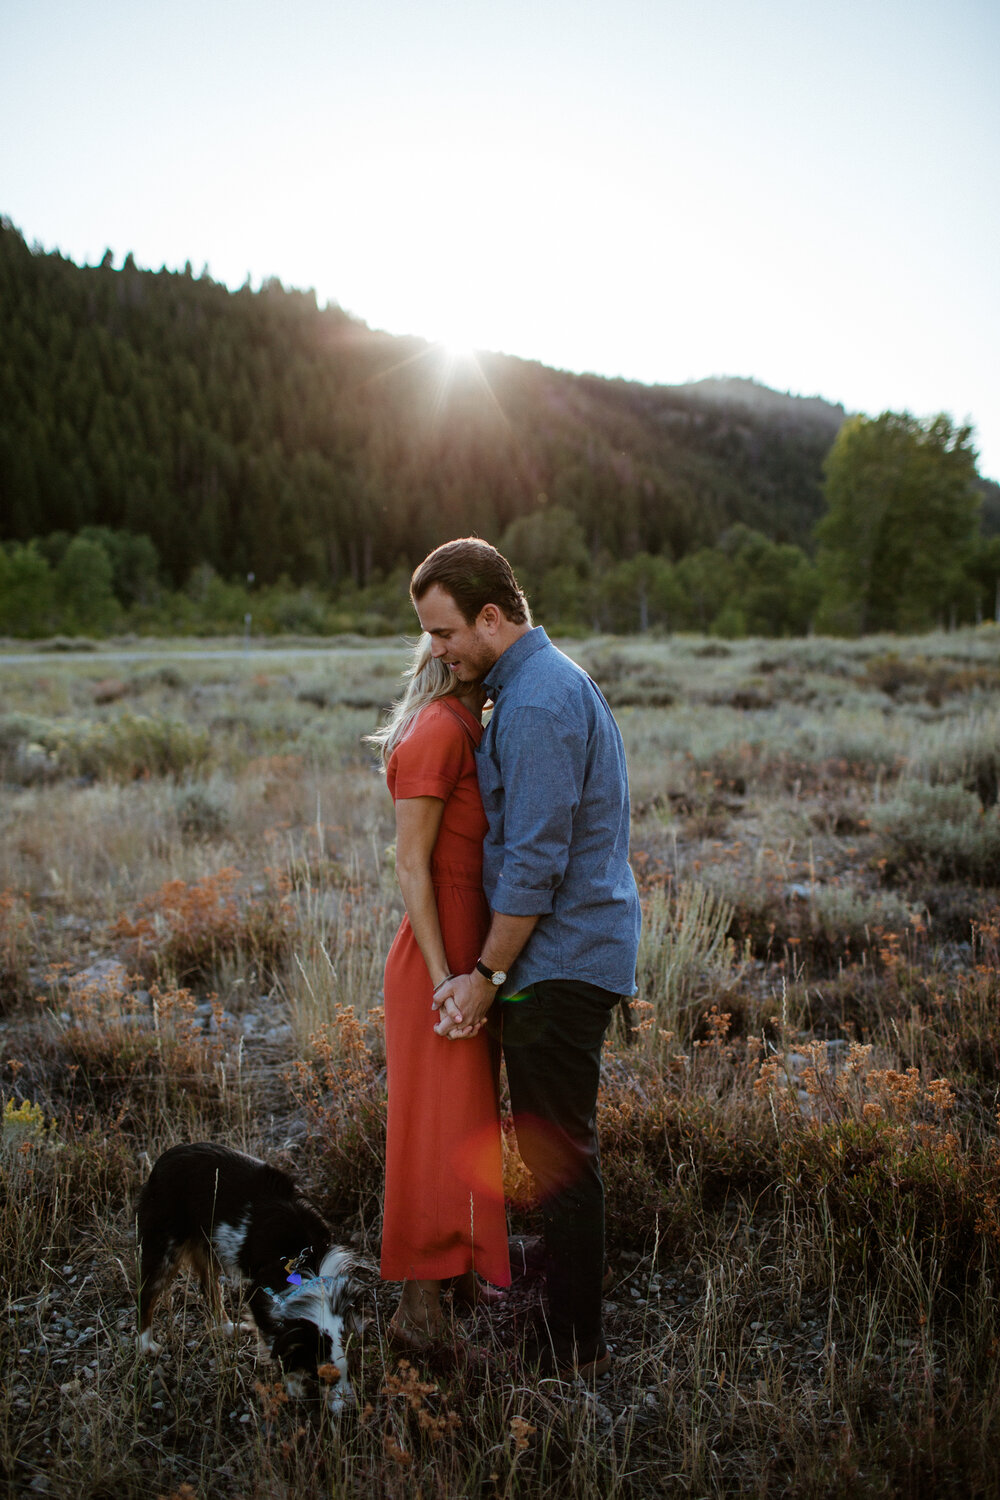 sun-valley-engagement-photos-christinemarie-9.jpg